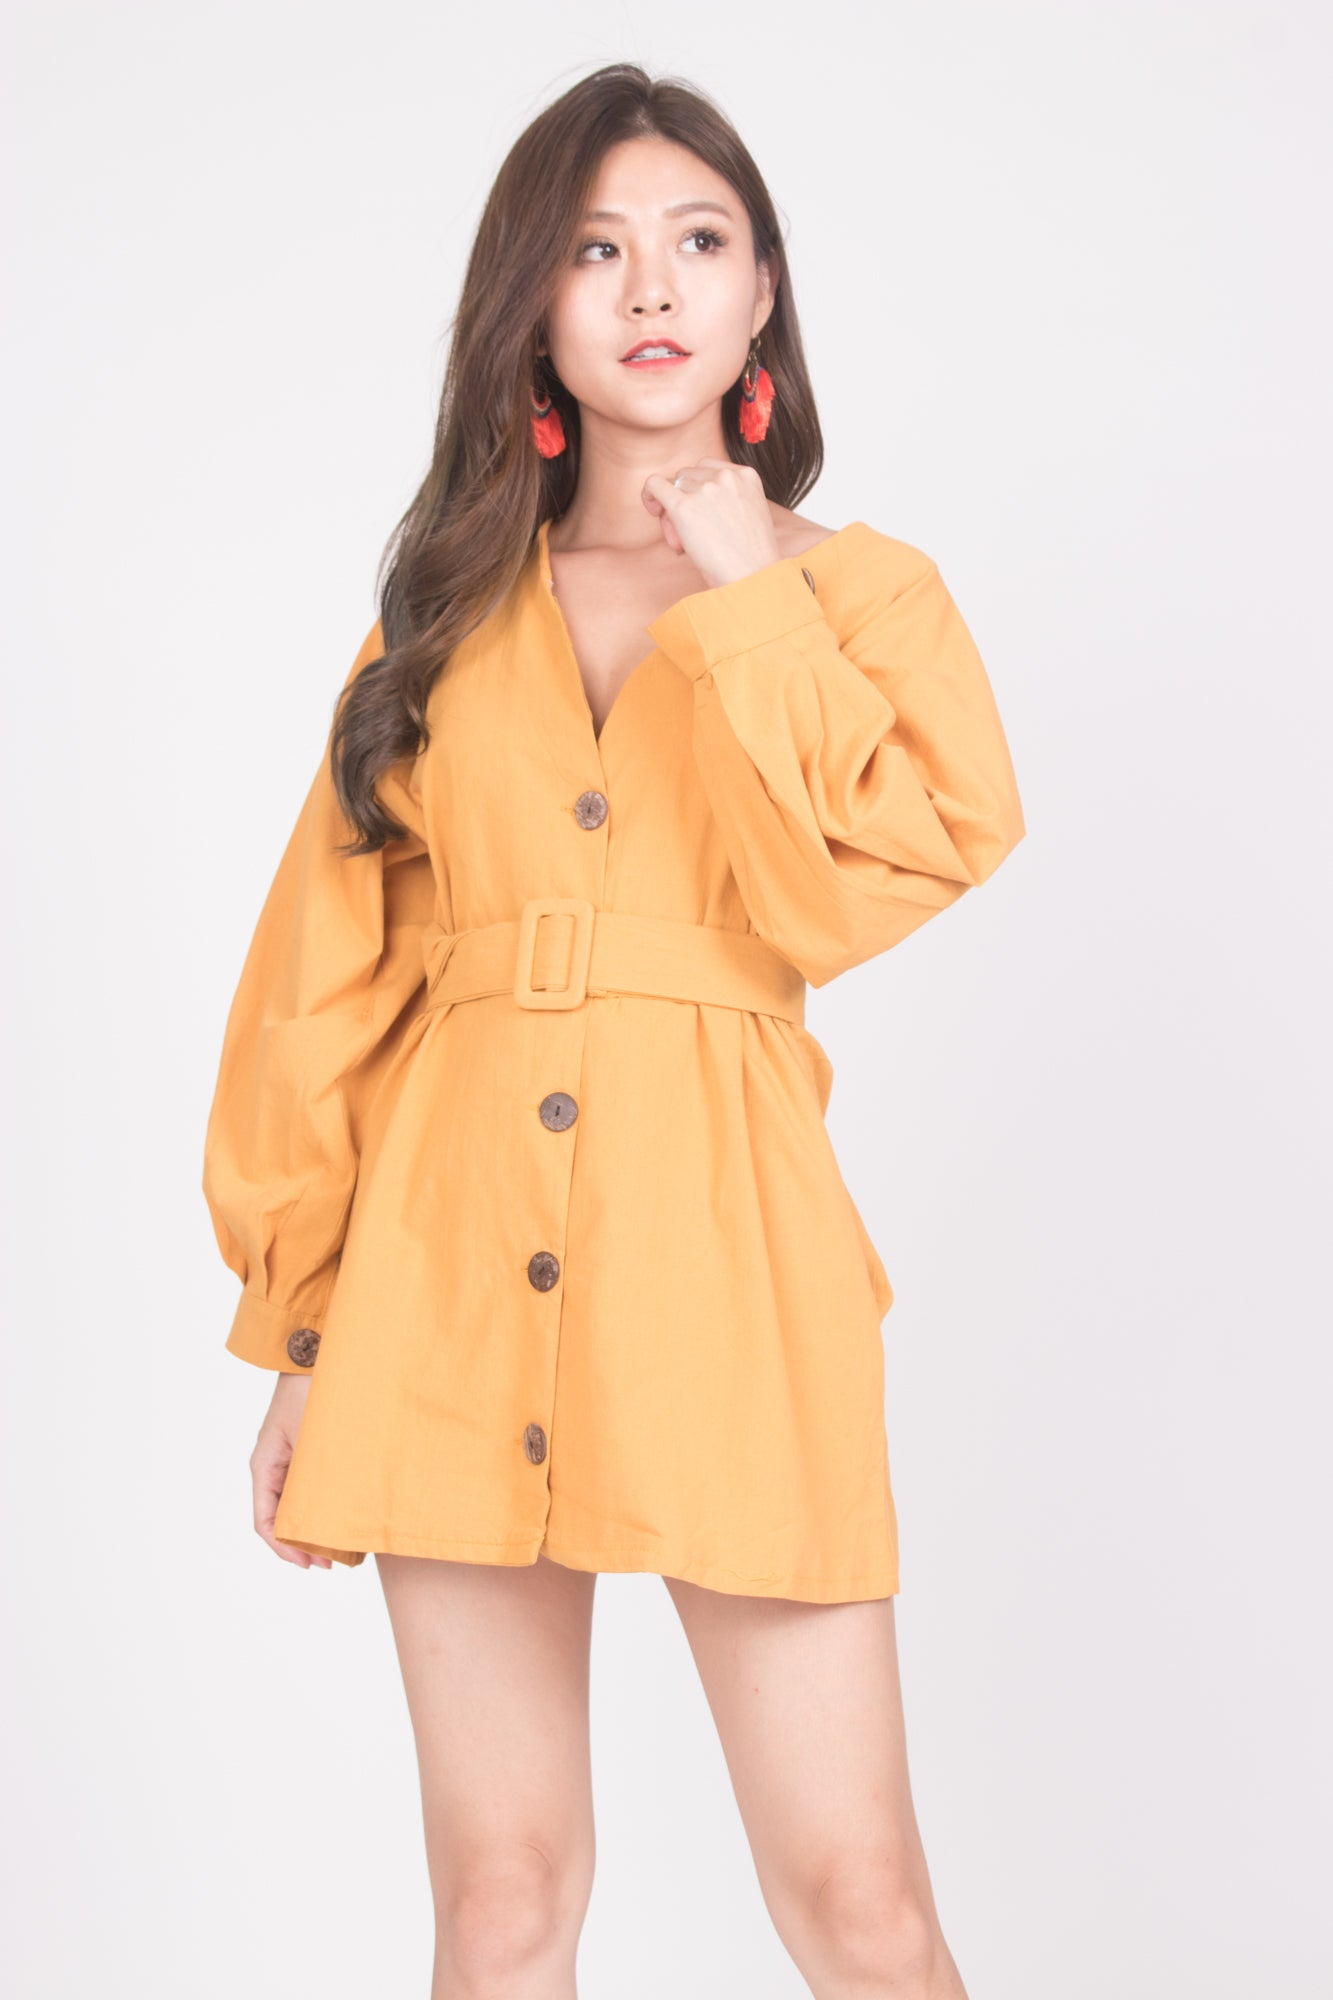 fcef9636 Lindie Button Down Tunic in Mustard - LBRLABEL